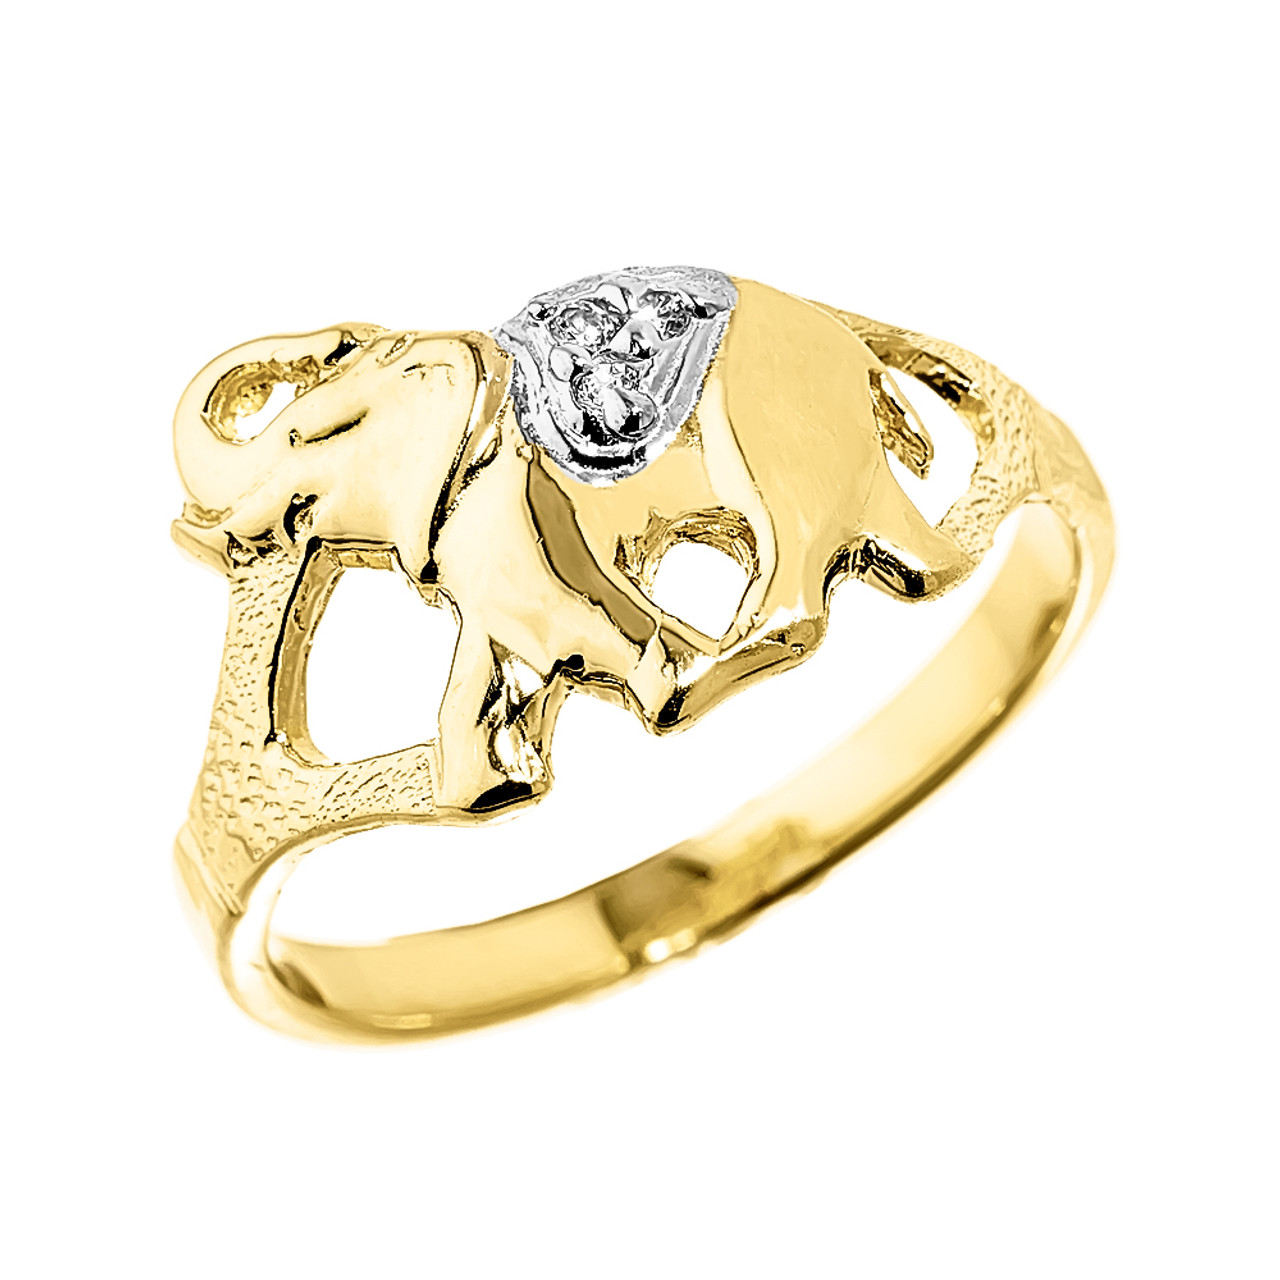 c online from buy nz original co engagement fishpond jewellery elephant rings q